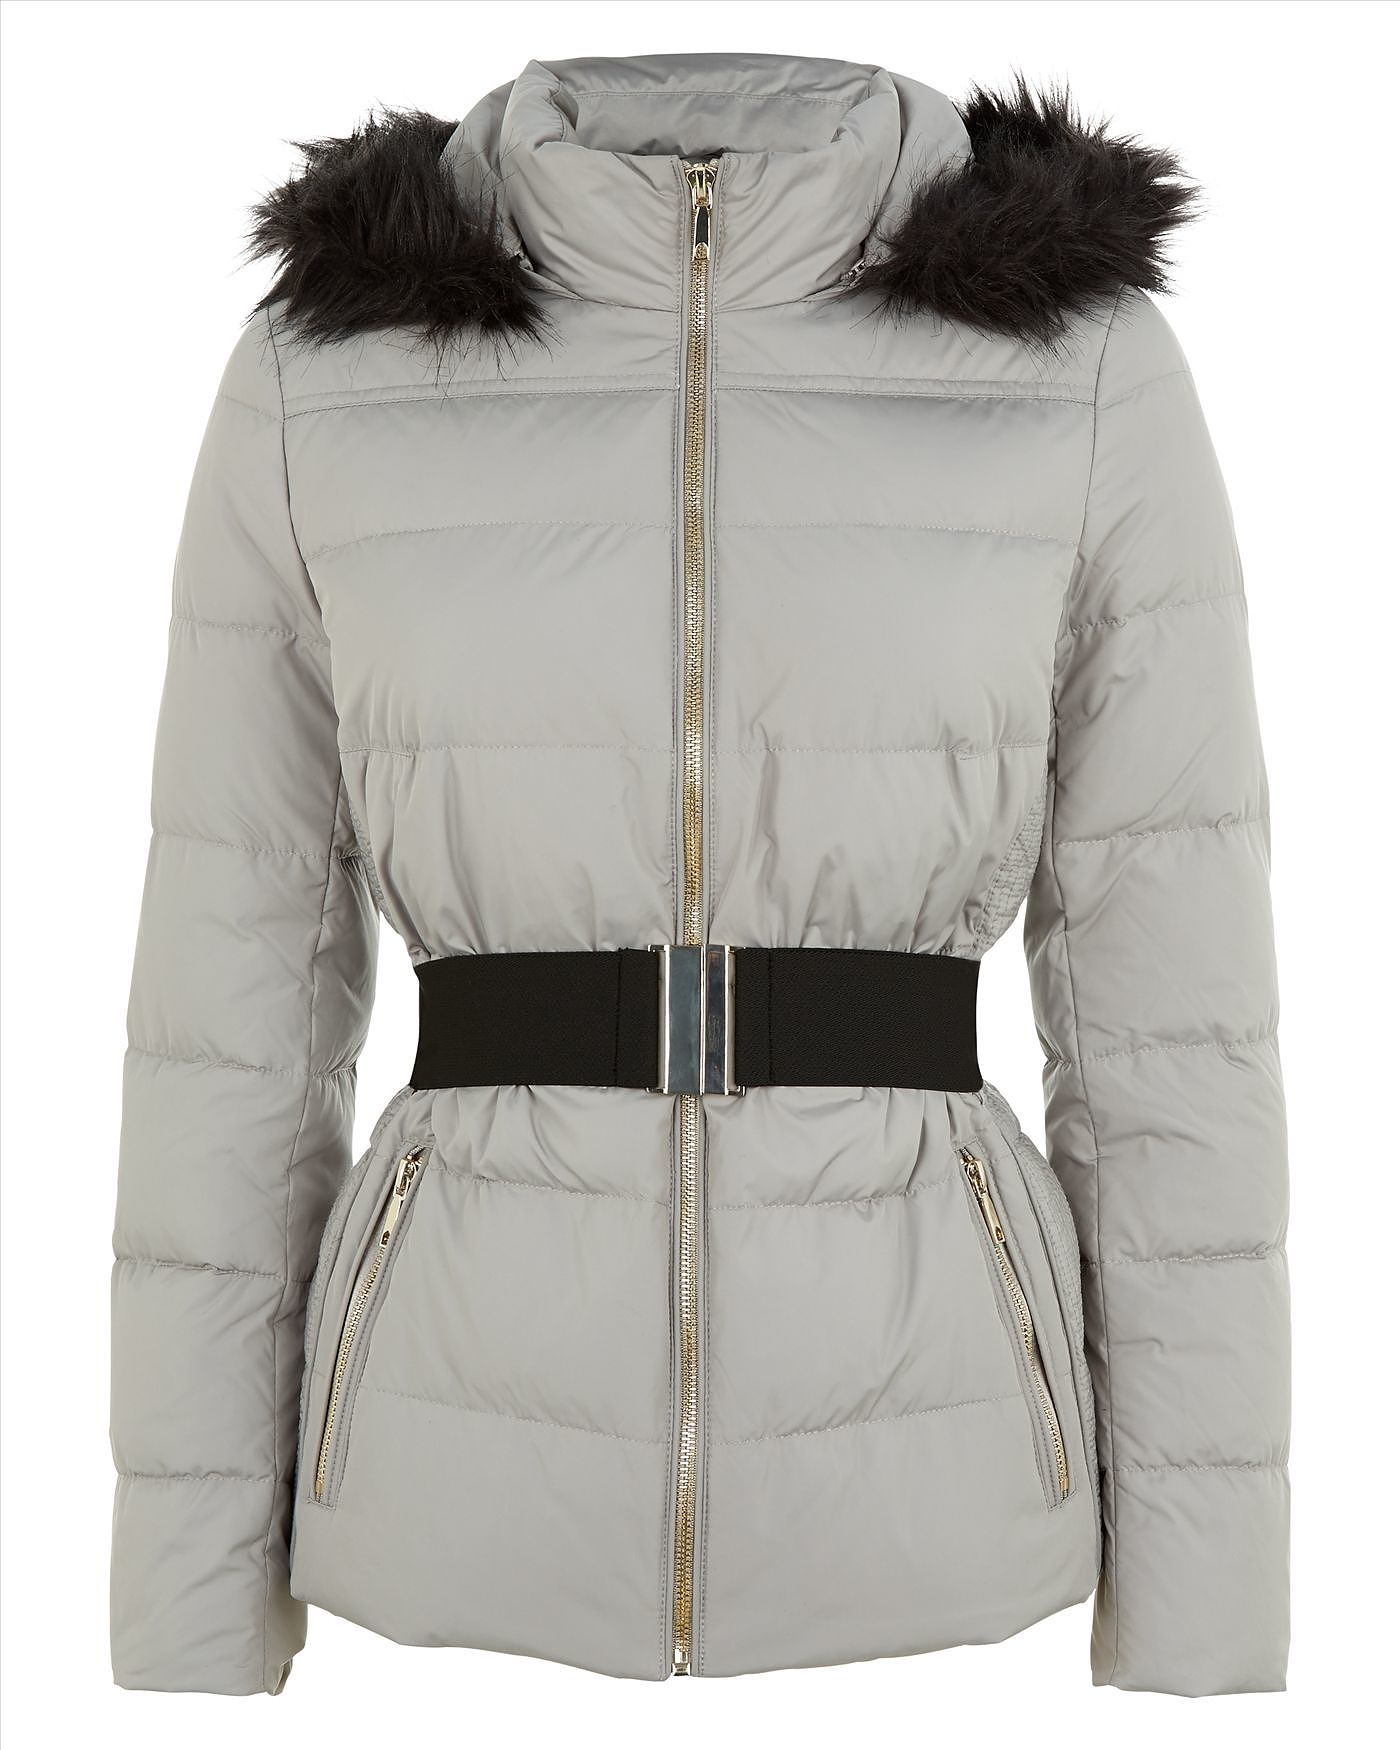 Womens dove grey jacket from Jaeger £199 at